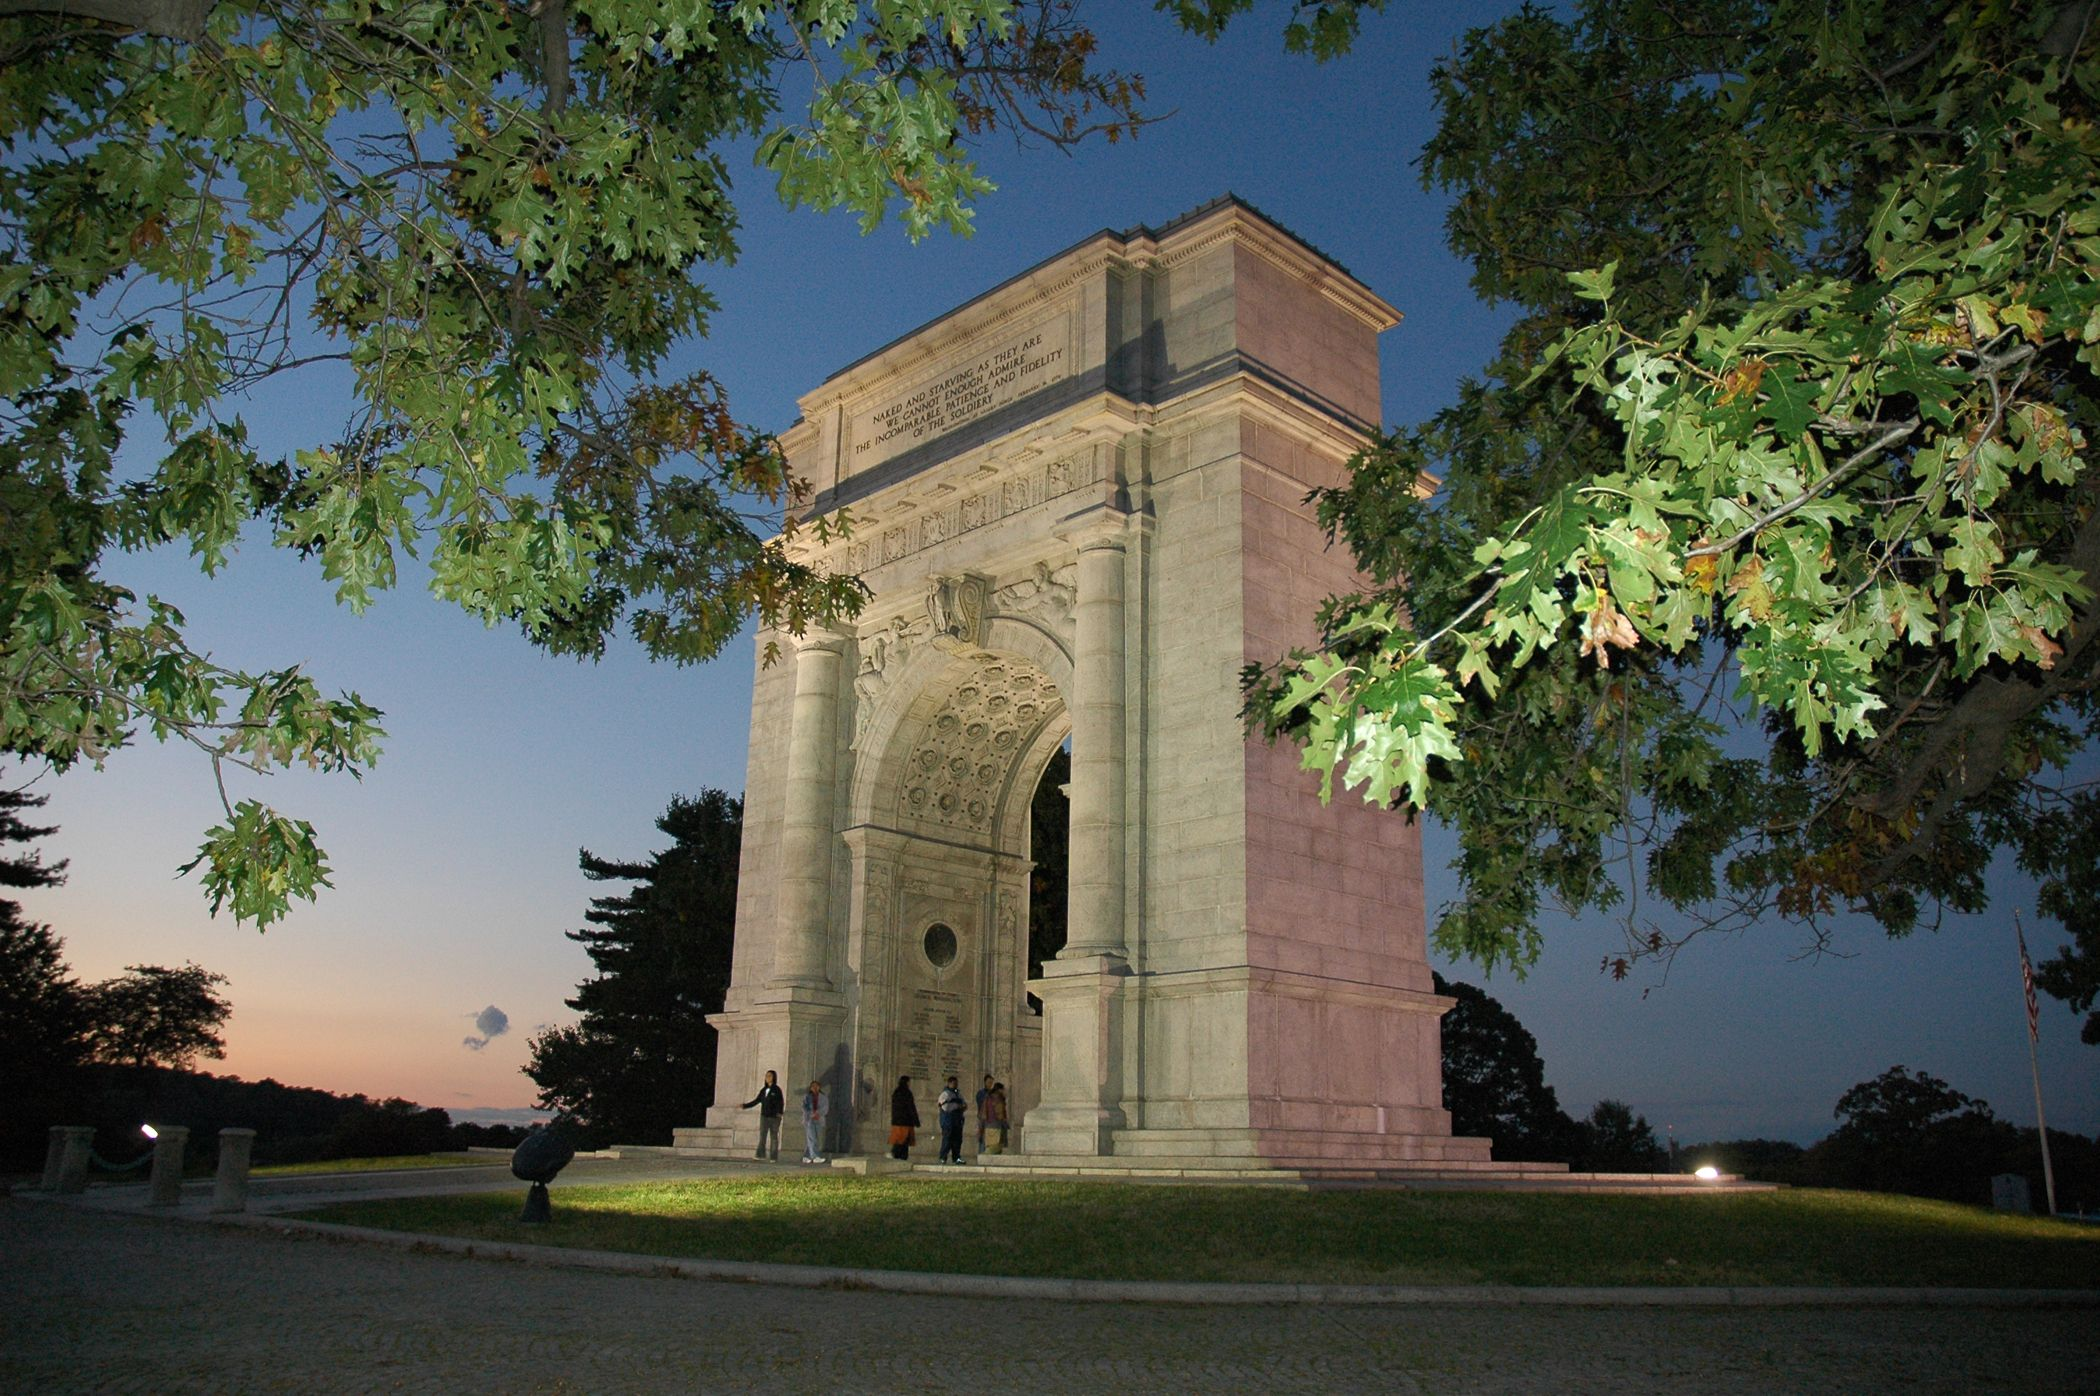 The famous Valley Forge Arch...beautiful picture of it!